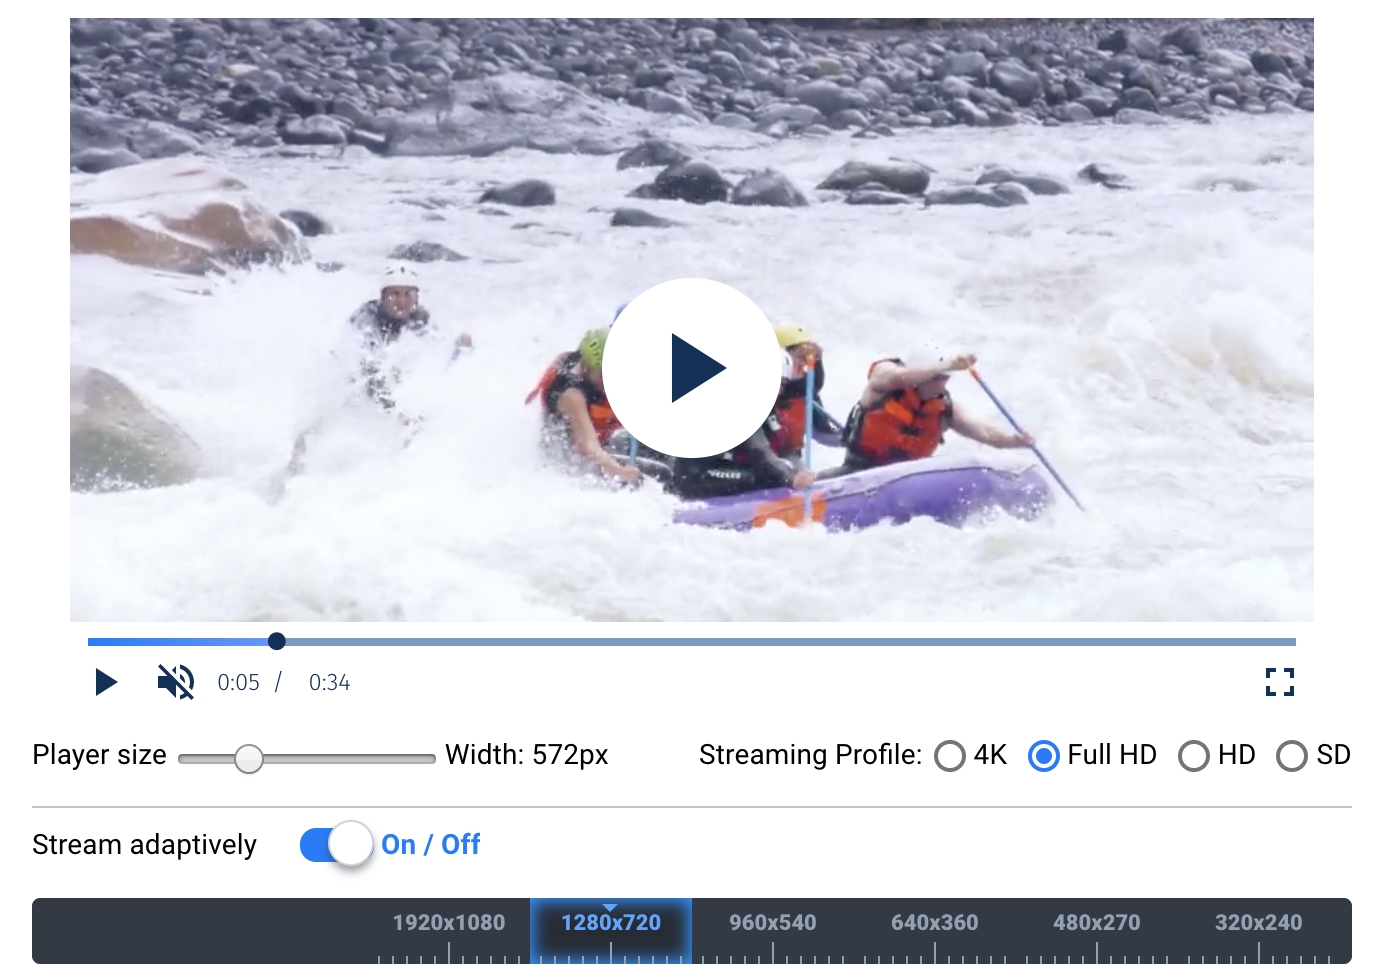 Cloudinary Video Cloudinary Launches a Complete Video Solution - cloudinary adaptive streaming - Cloudinary Launches a Complete Video Solution